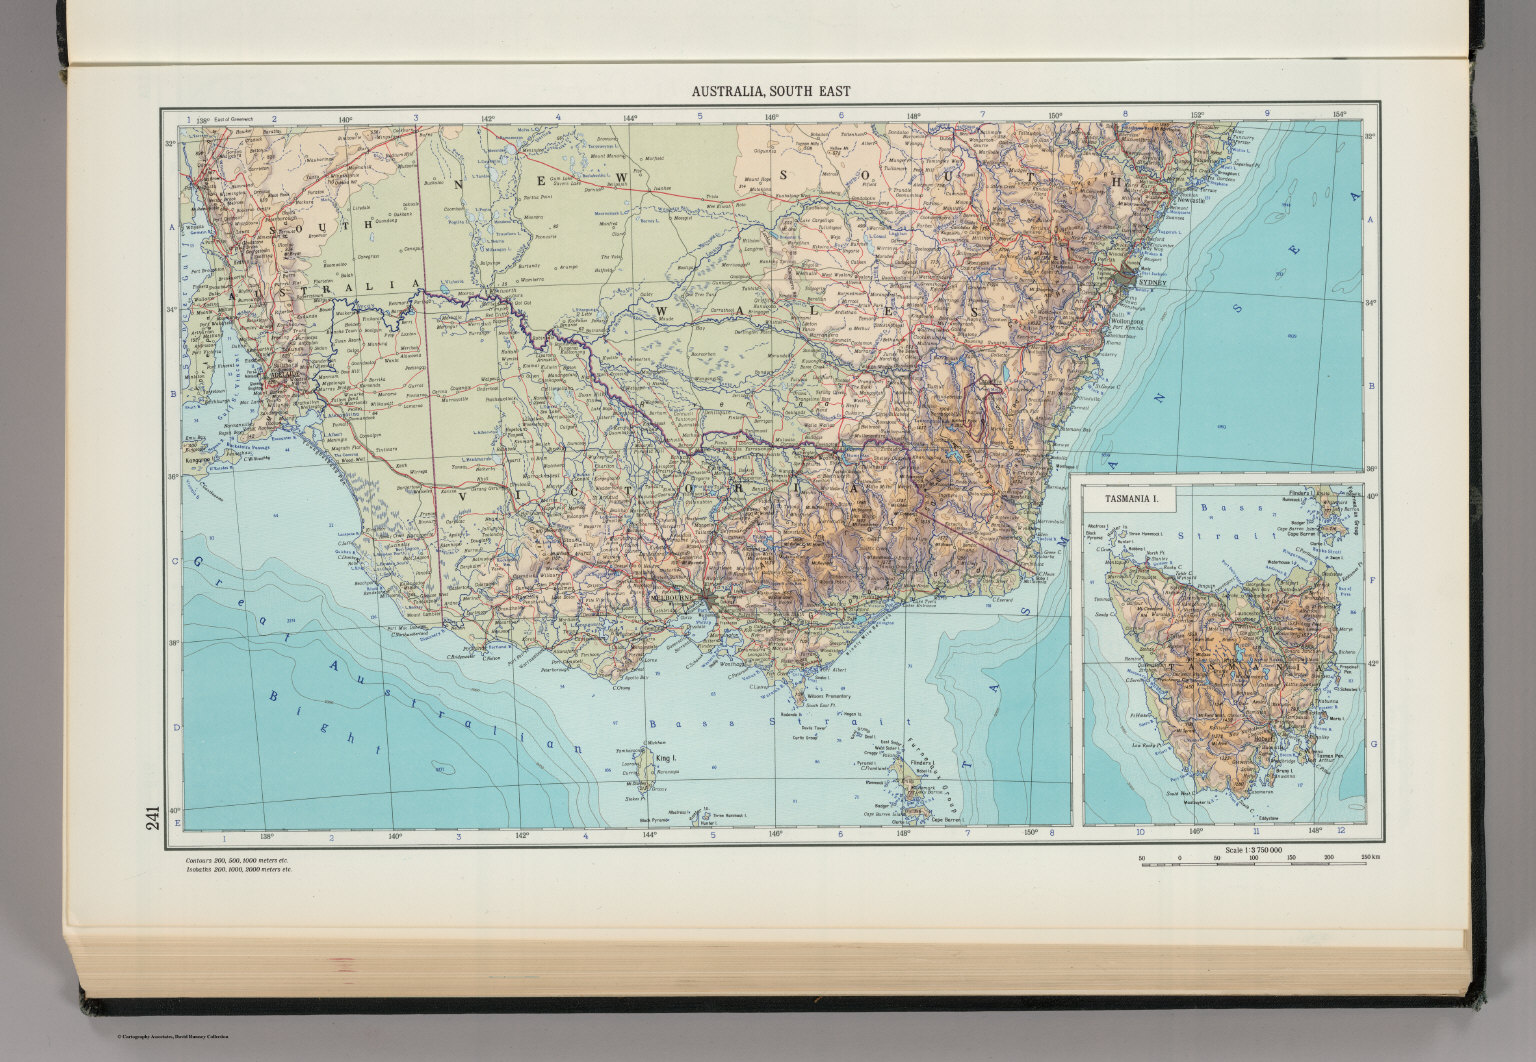 241  Australia  South East  Tasmania  The World Atlas    David     Tasmania  The World Atlas